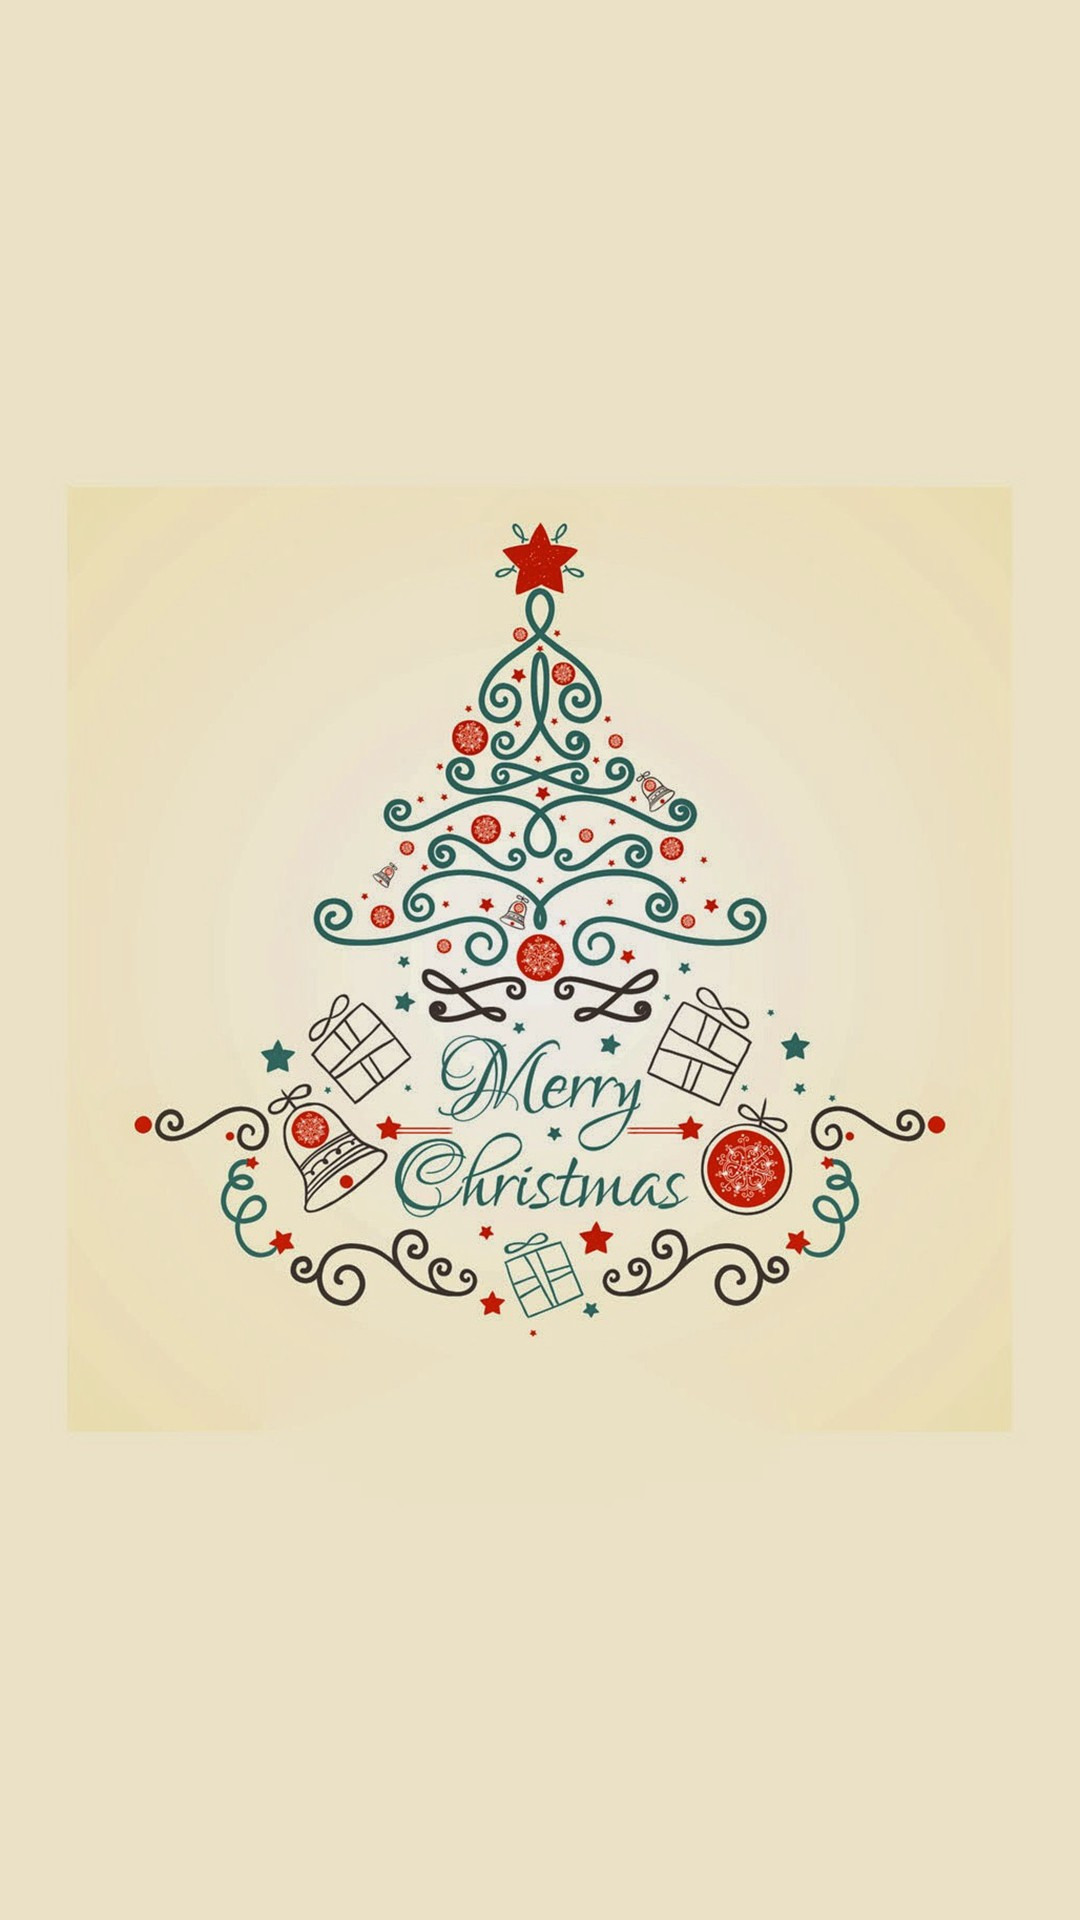 Christmas Tree 2015 Wishes iPhone 8 wallpaper